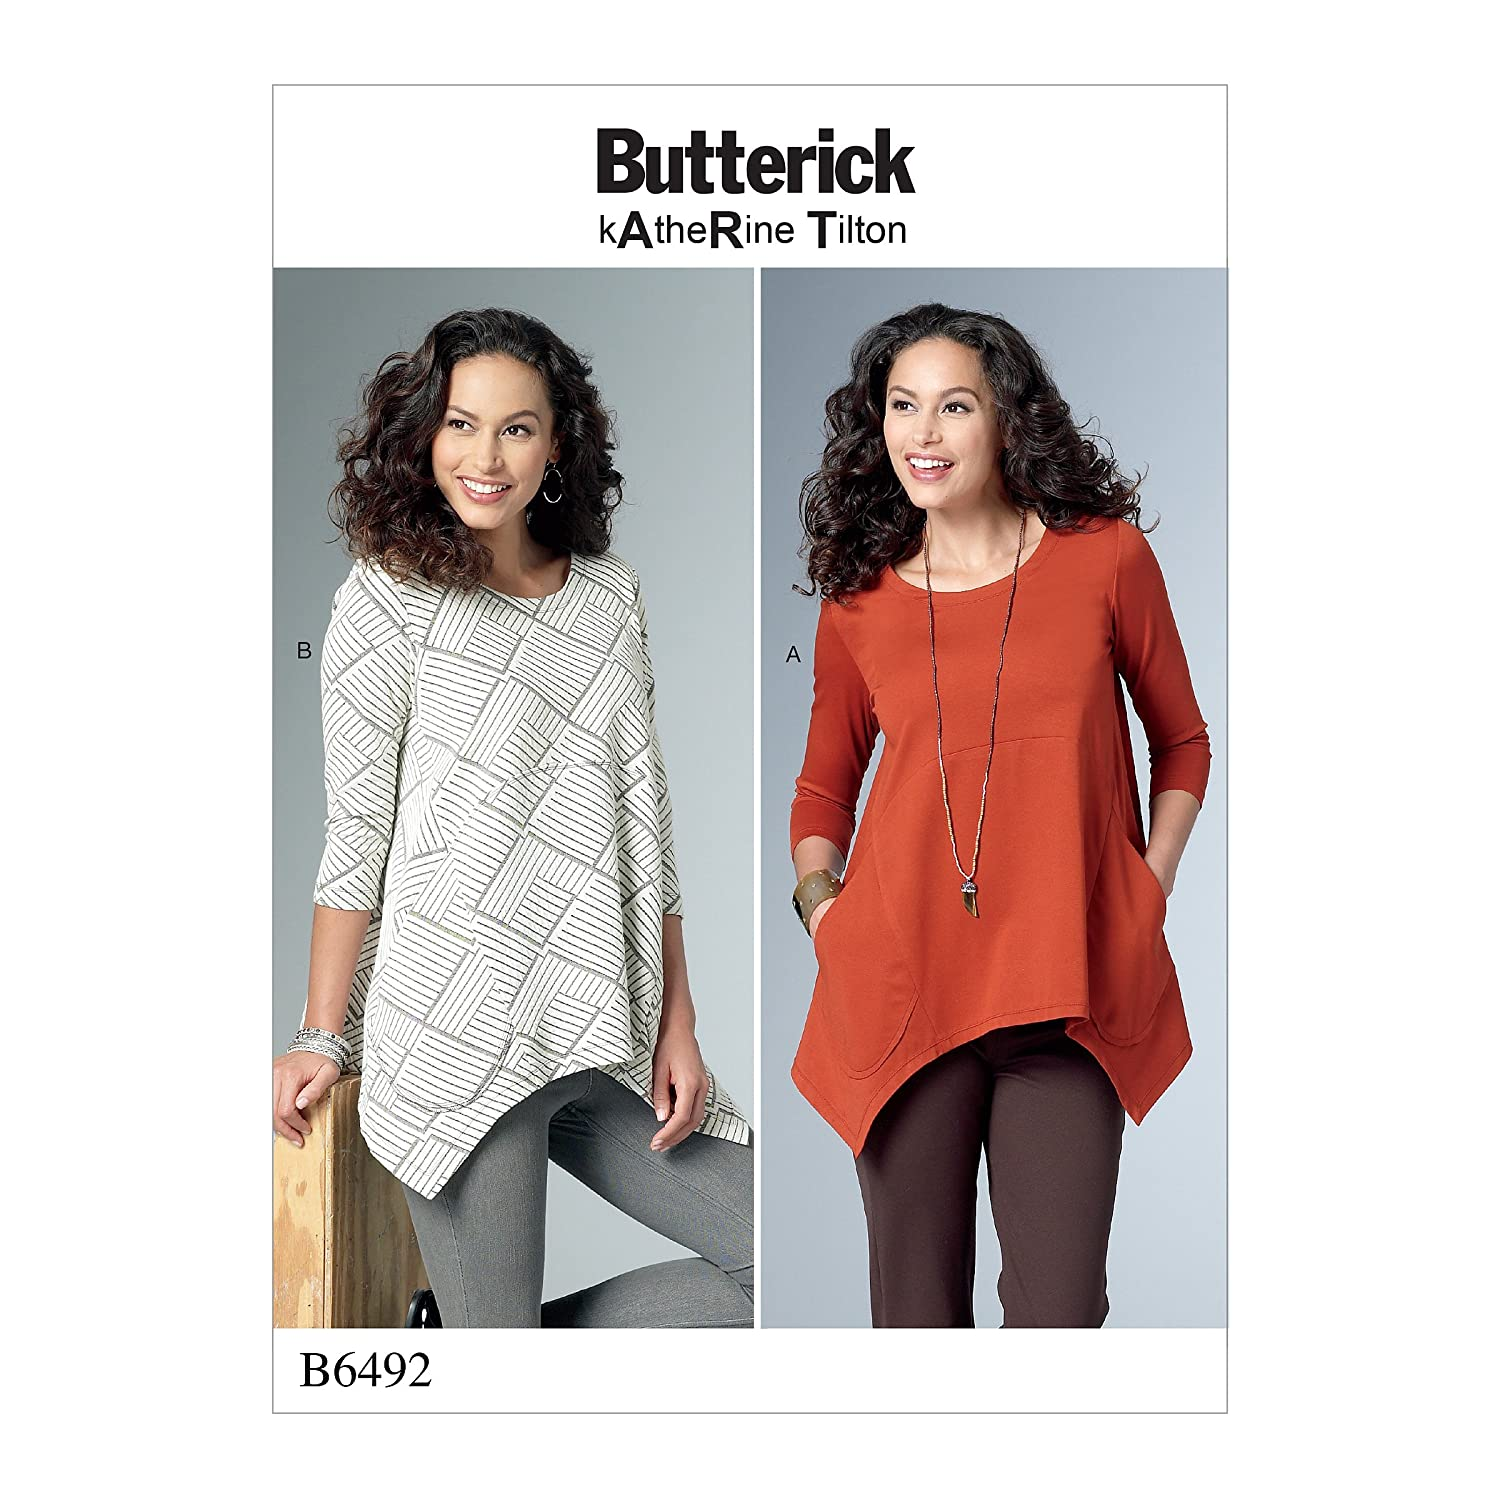 Butterick Patterns 6492 ZZ,Misses Tunic,Sizes LRG-XXL, Tissue, Multi-Colour, 17 x 0.5 x 22 cm The McCall Pattern Company B6492ZZ0